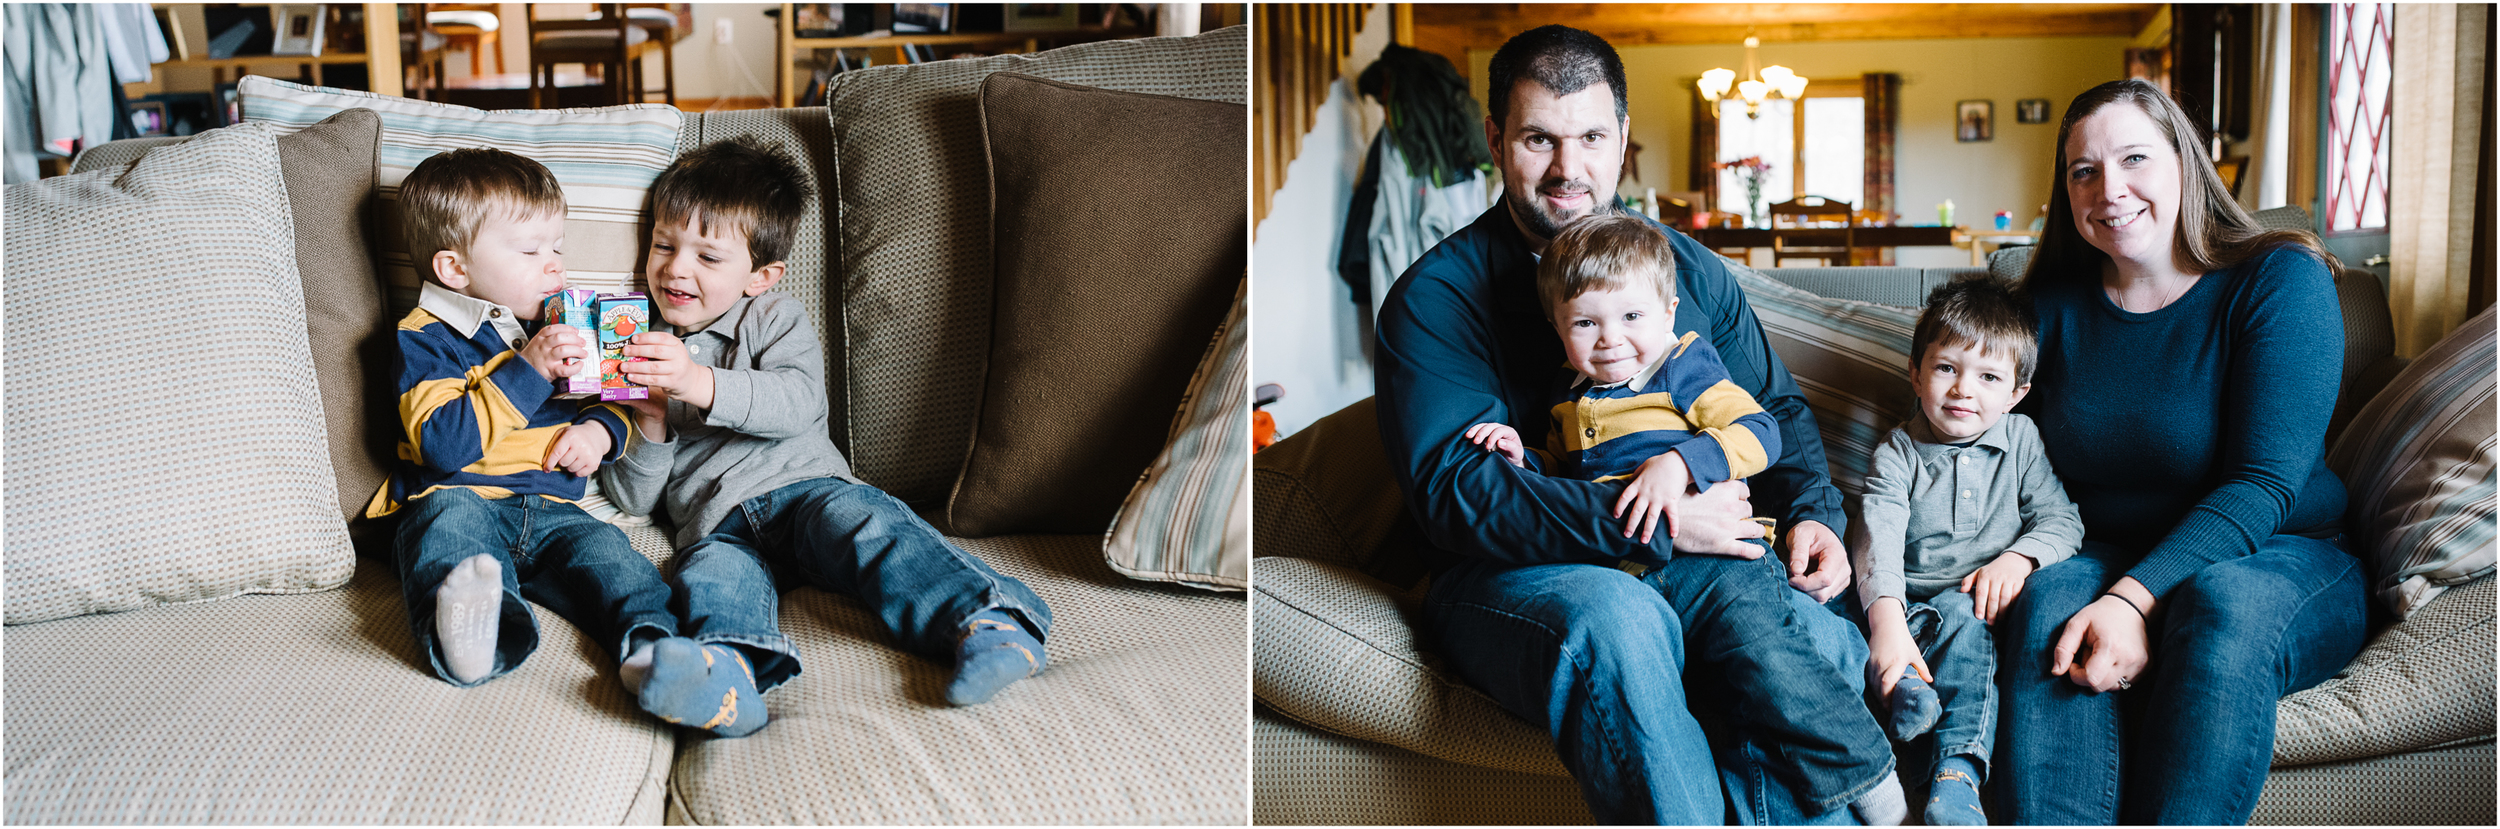 mariah fisher family lifestyle portrait photographer western pennsylvania.jpg